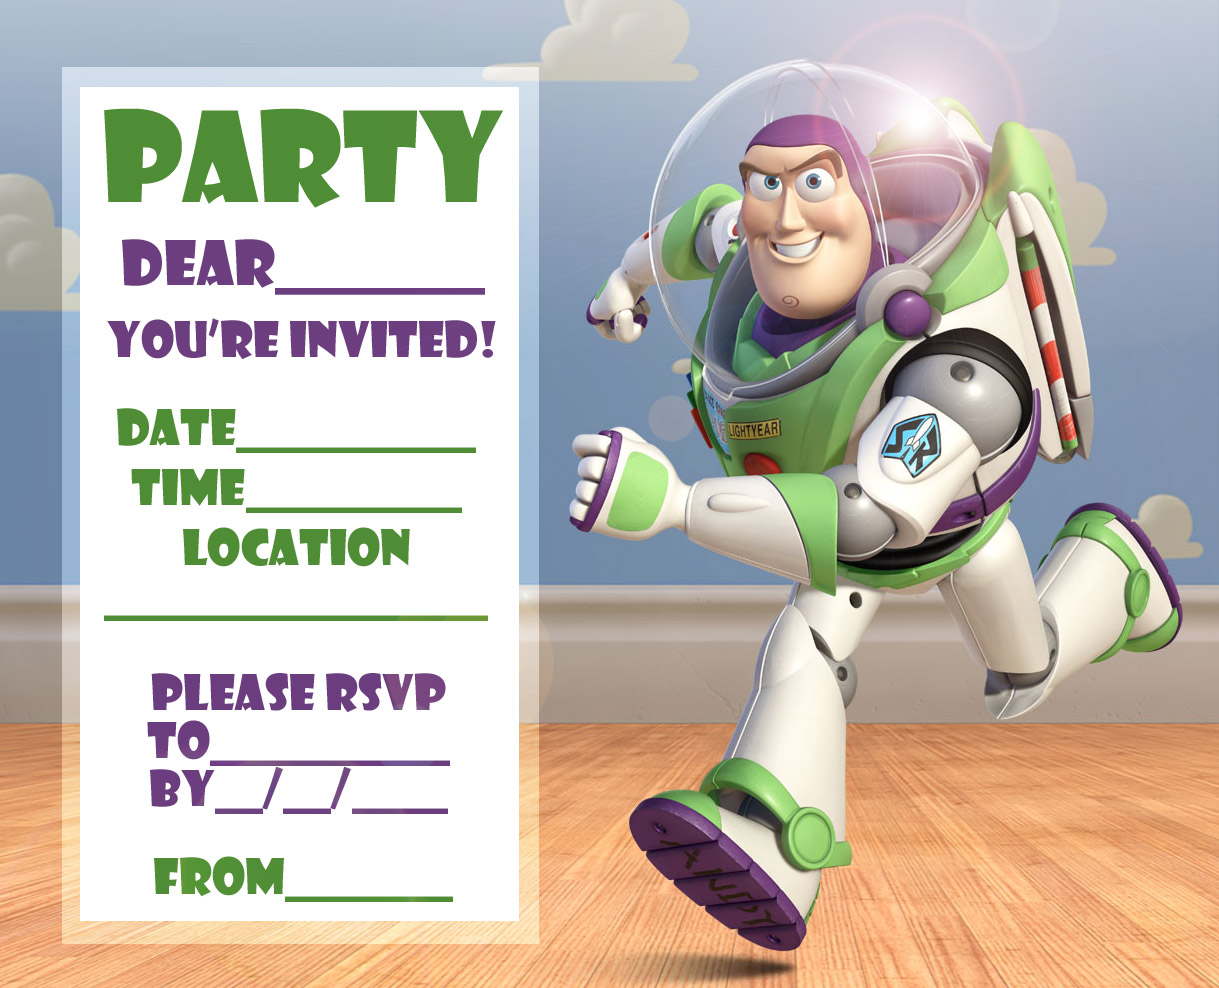 Free Love Quotes: FREE Toy Story Woody and Buzz Lightyear Party ...